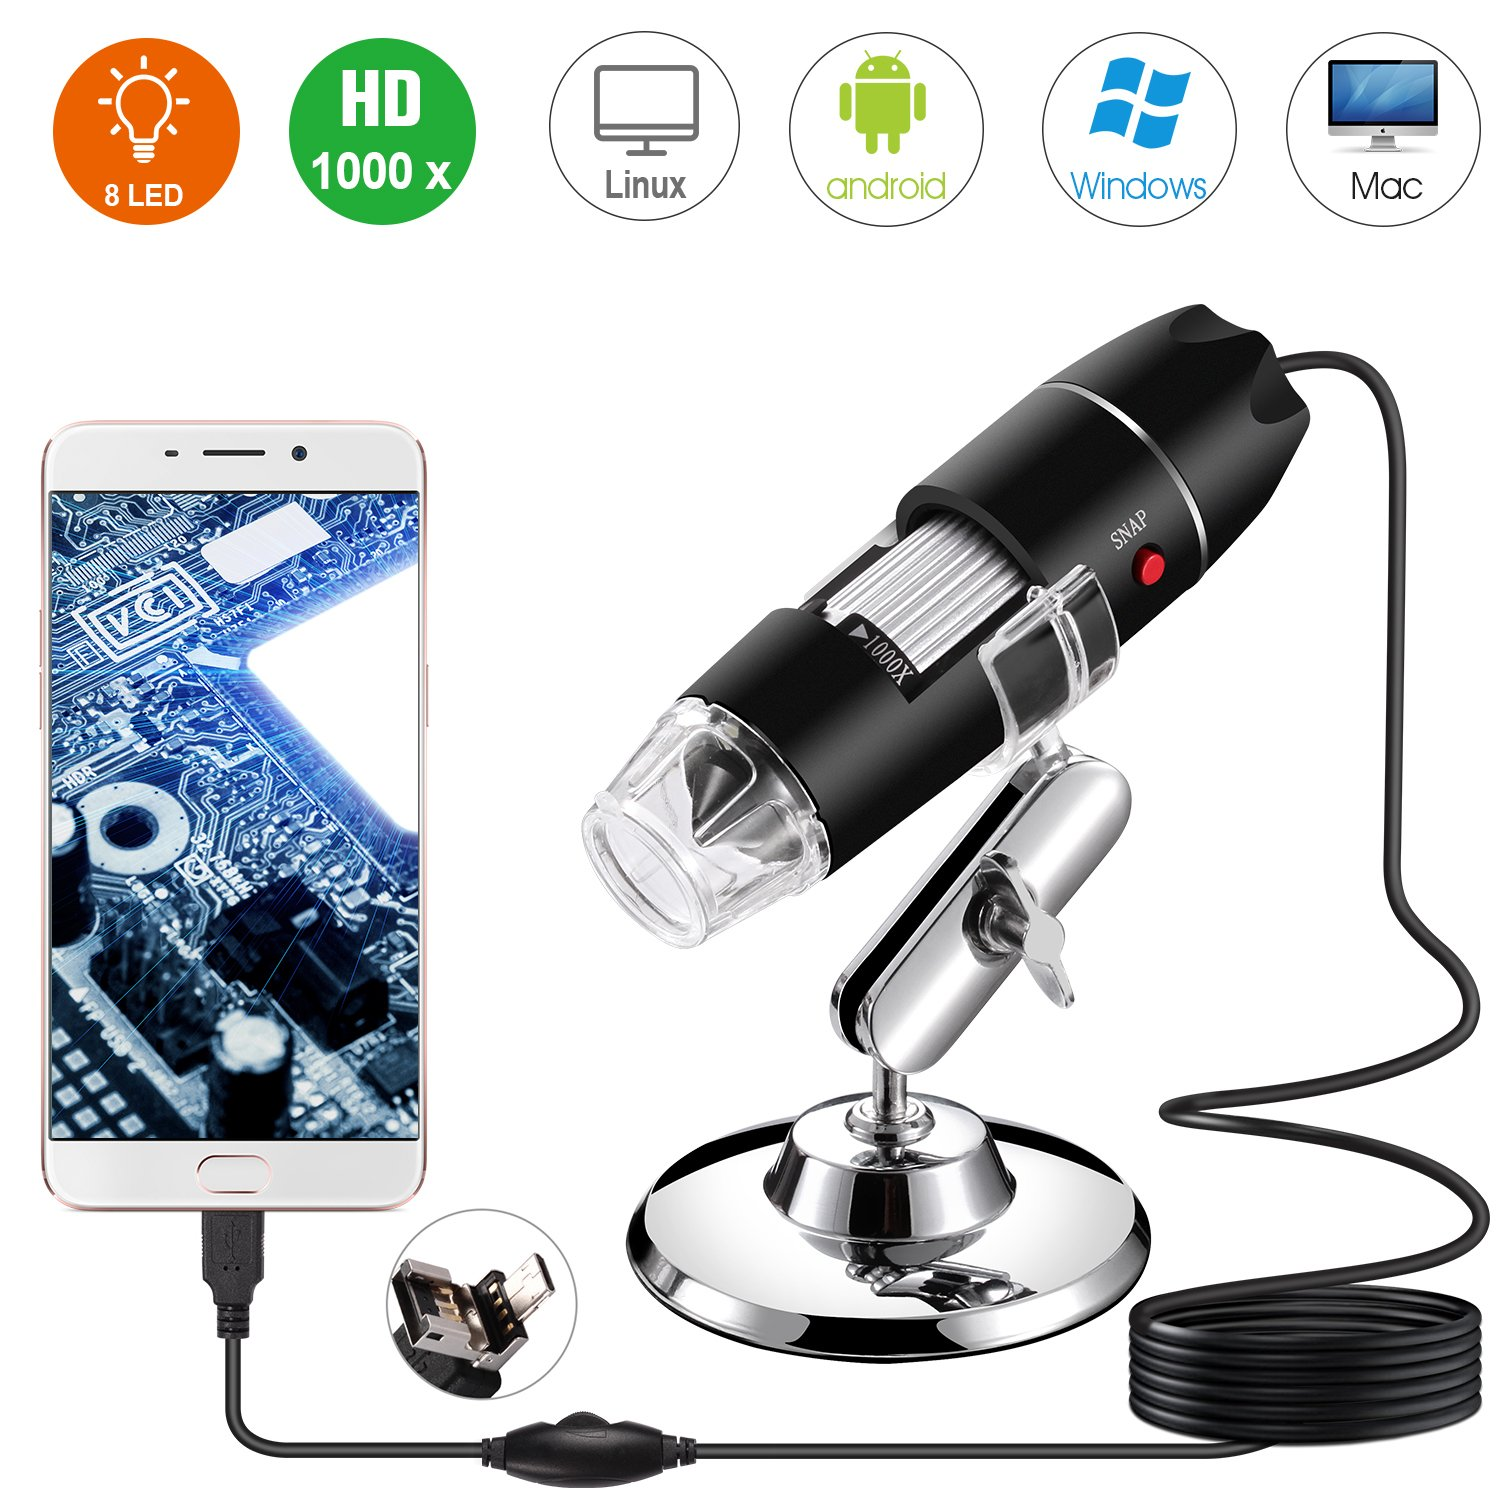 Microscopio Digital USB, endoscopio de Aumento 40X-1000X de Mano Bysameyee, Mini cámara de Video de 8 LED para Windows 7/8/10 Mac Linux Android (con OTG): ...